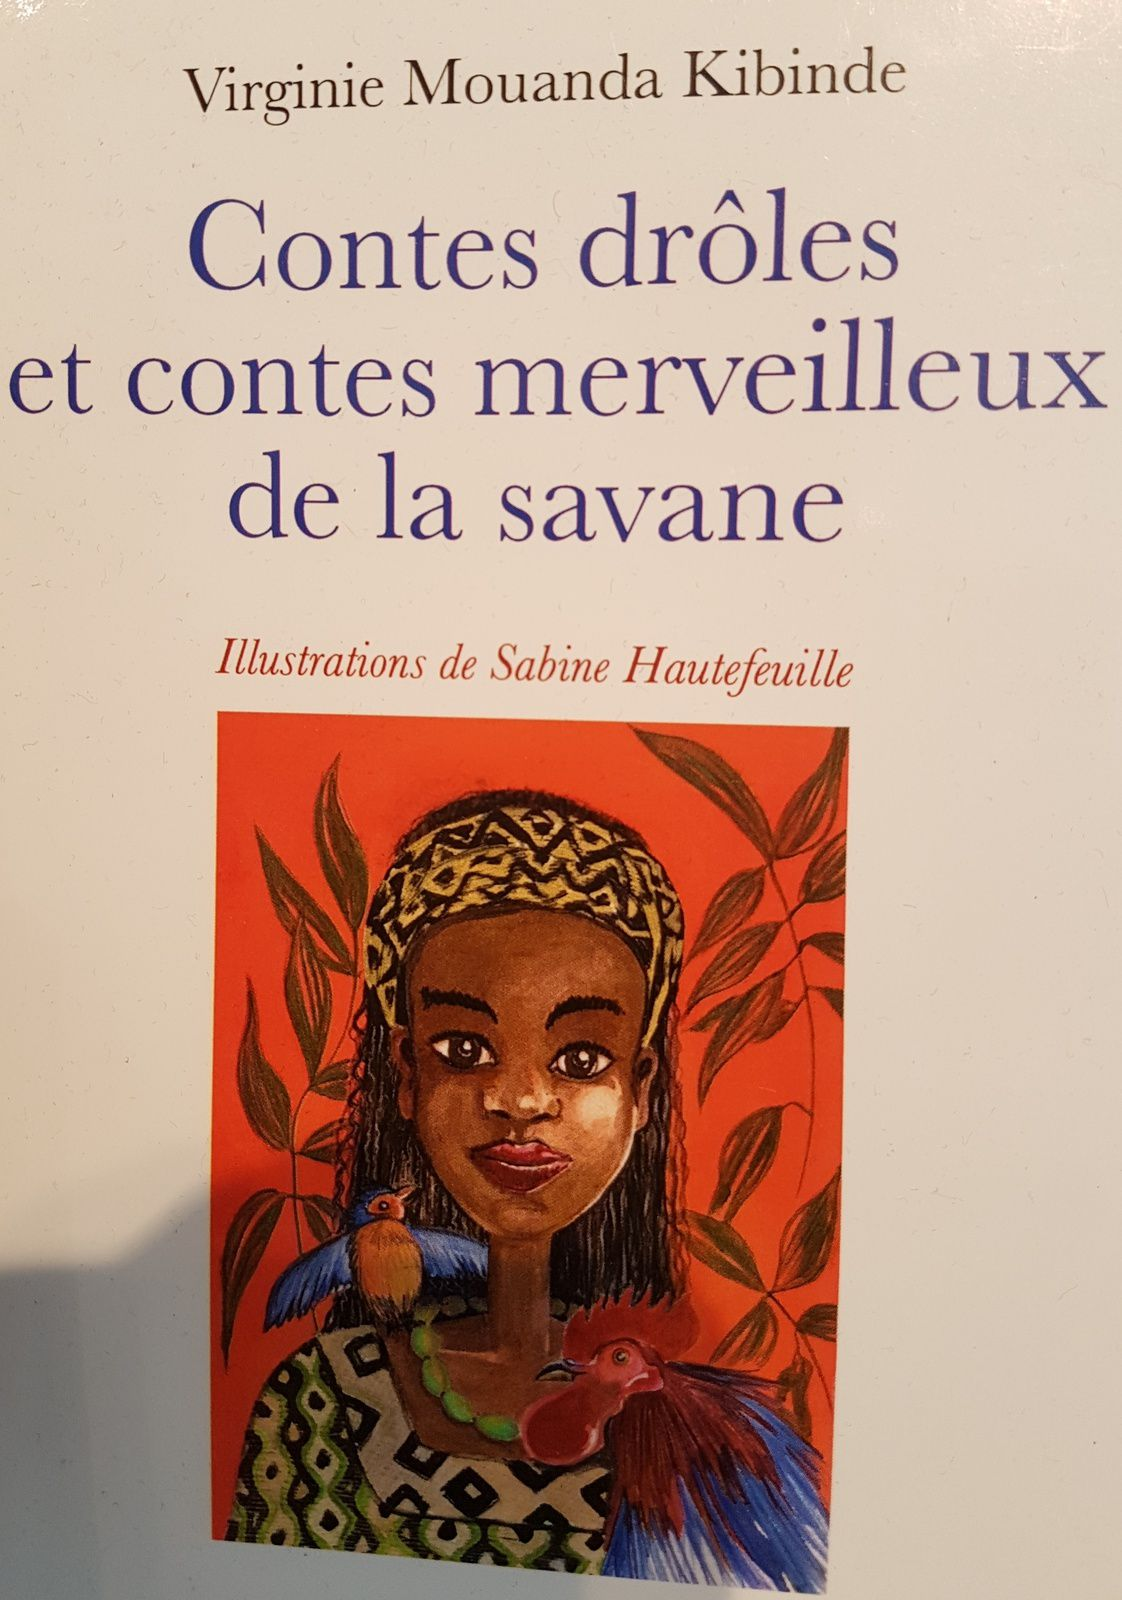 «My Bélinda Paris, une mode africaine ambitieuse, entre tradition et modernité», par M. Amadou Bal BA, http://baamadou.over-blog.fr/